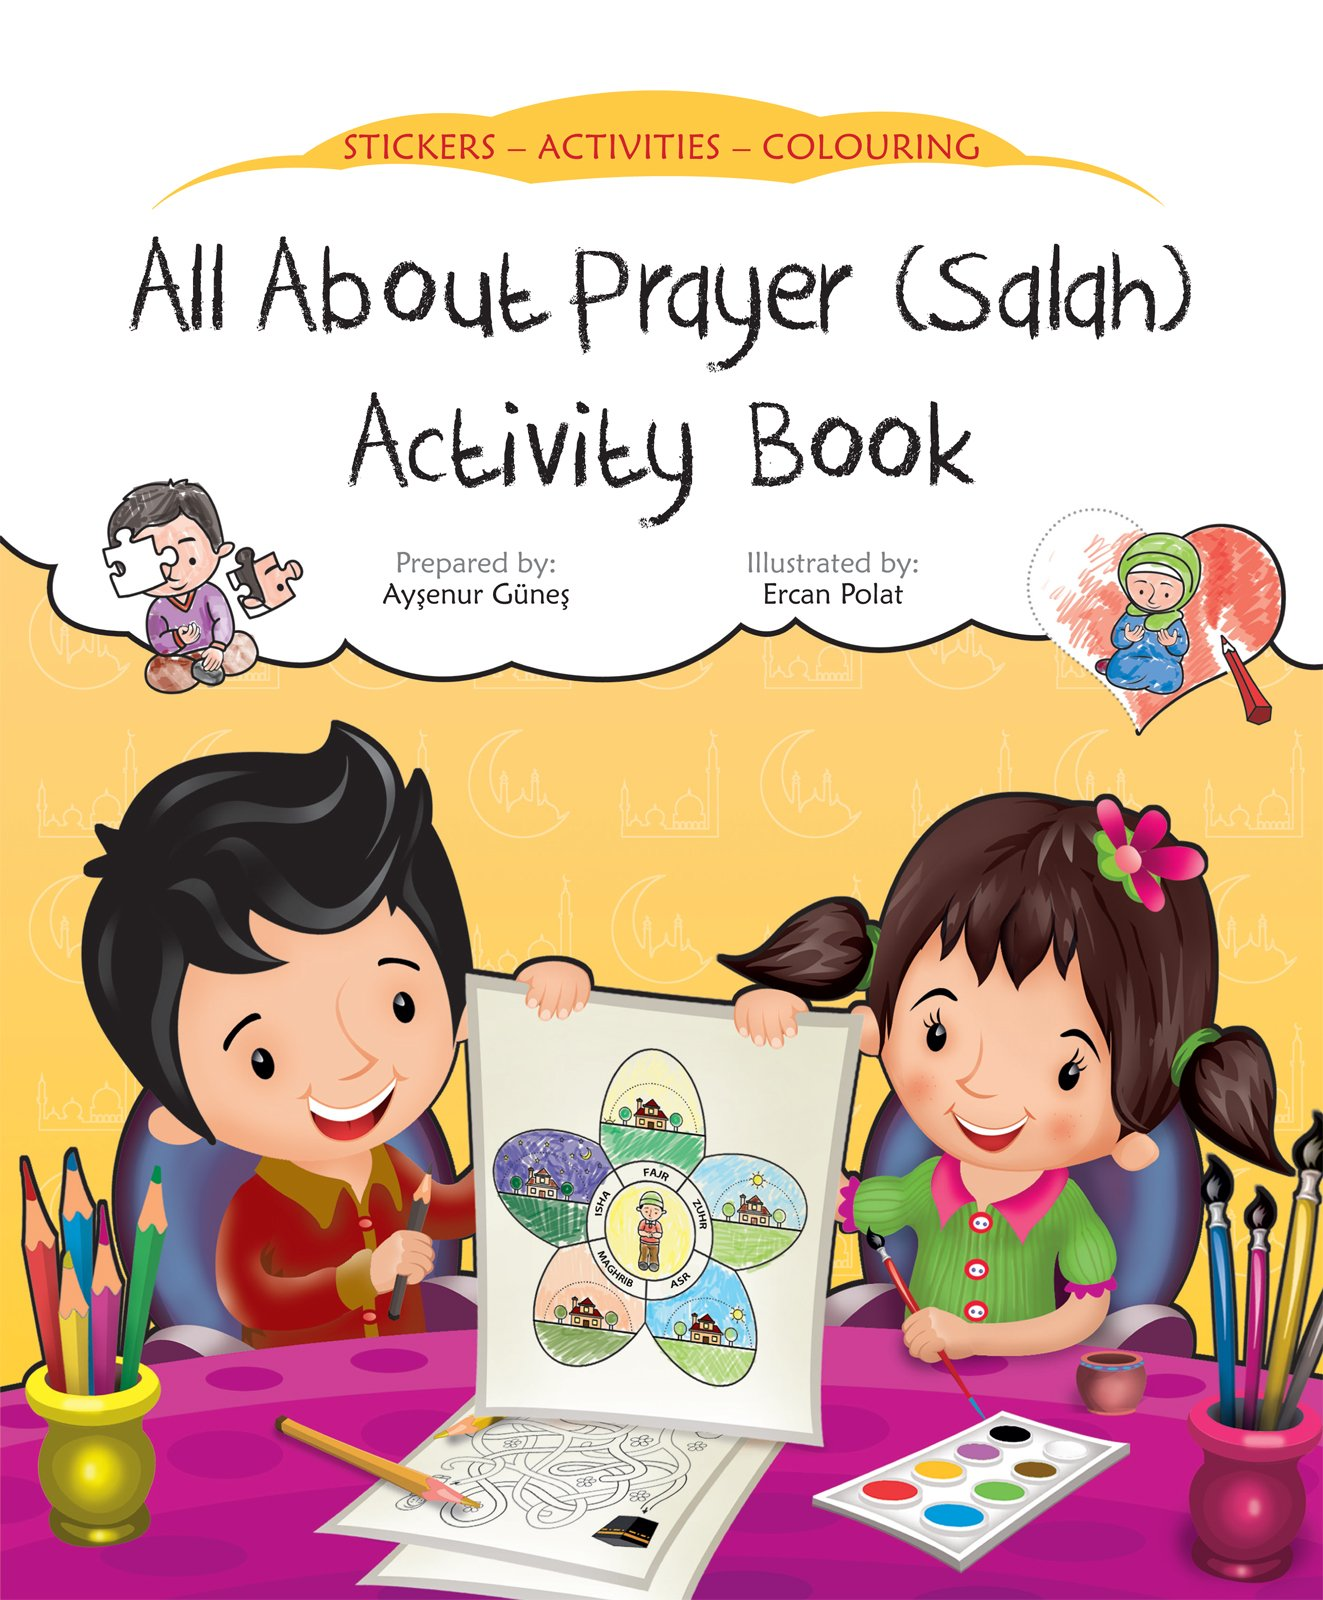 about Prayer Activity Discover Sticker product image